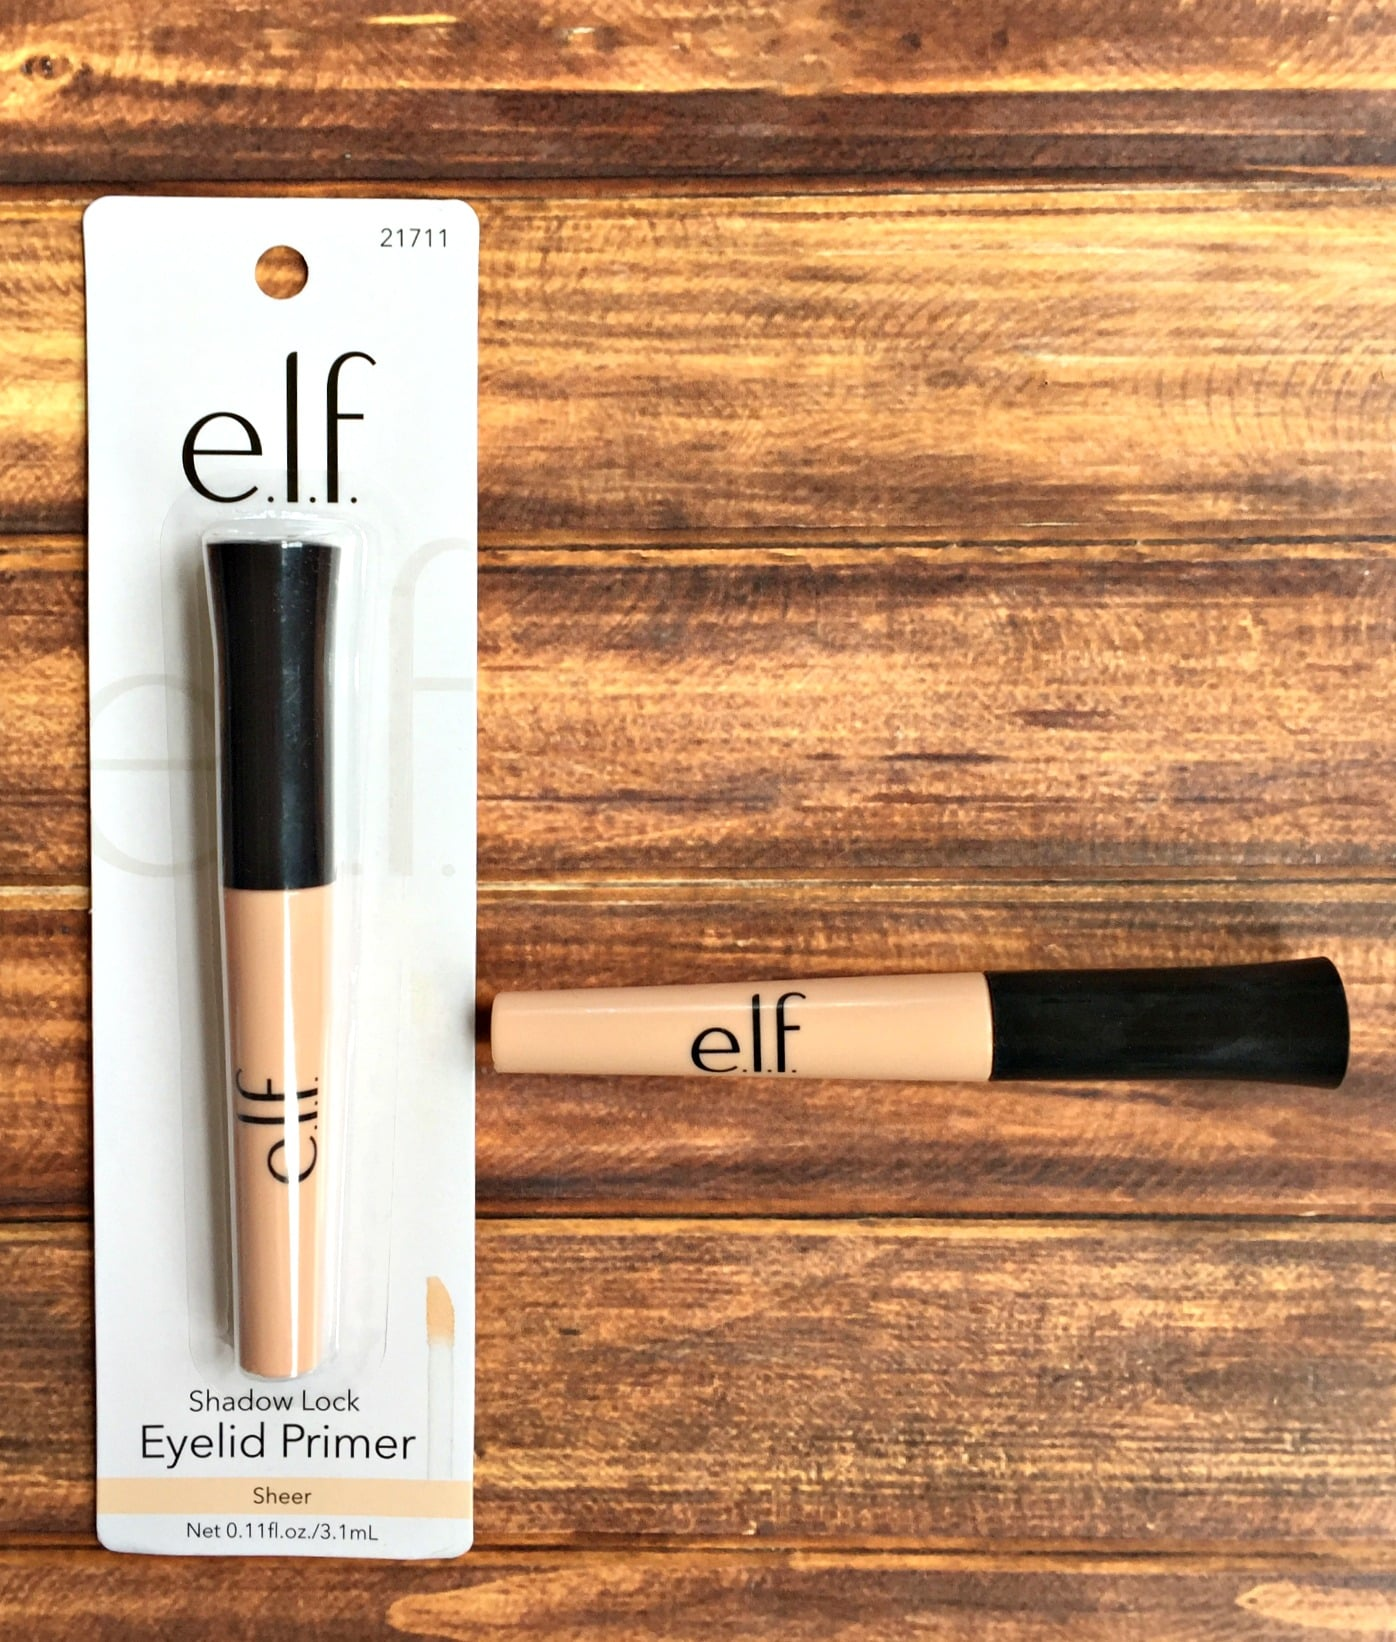 A few of my favorite things from Amazon e.l.f. eyelid primer